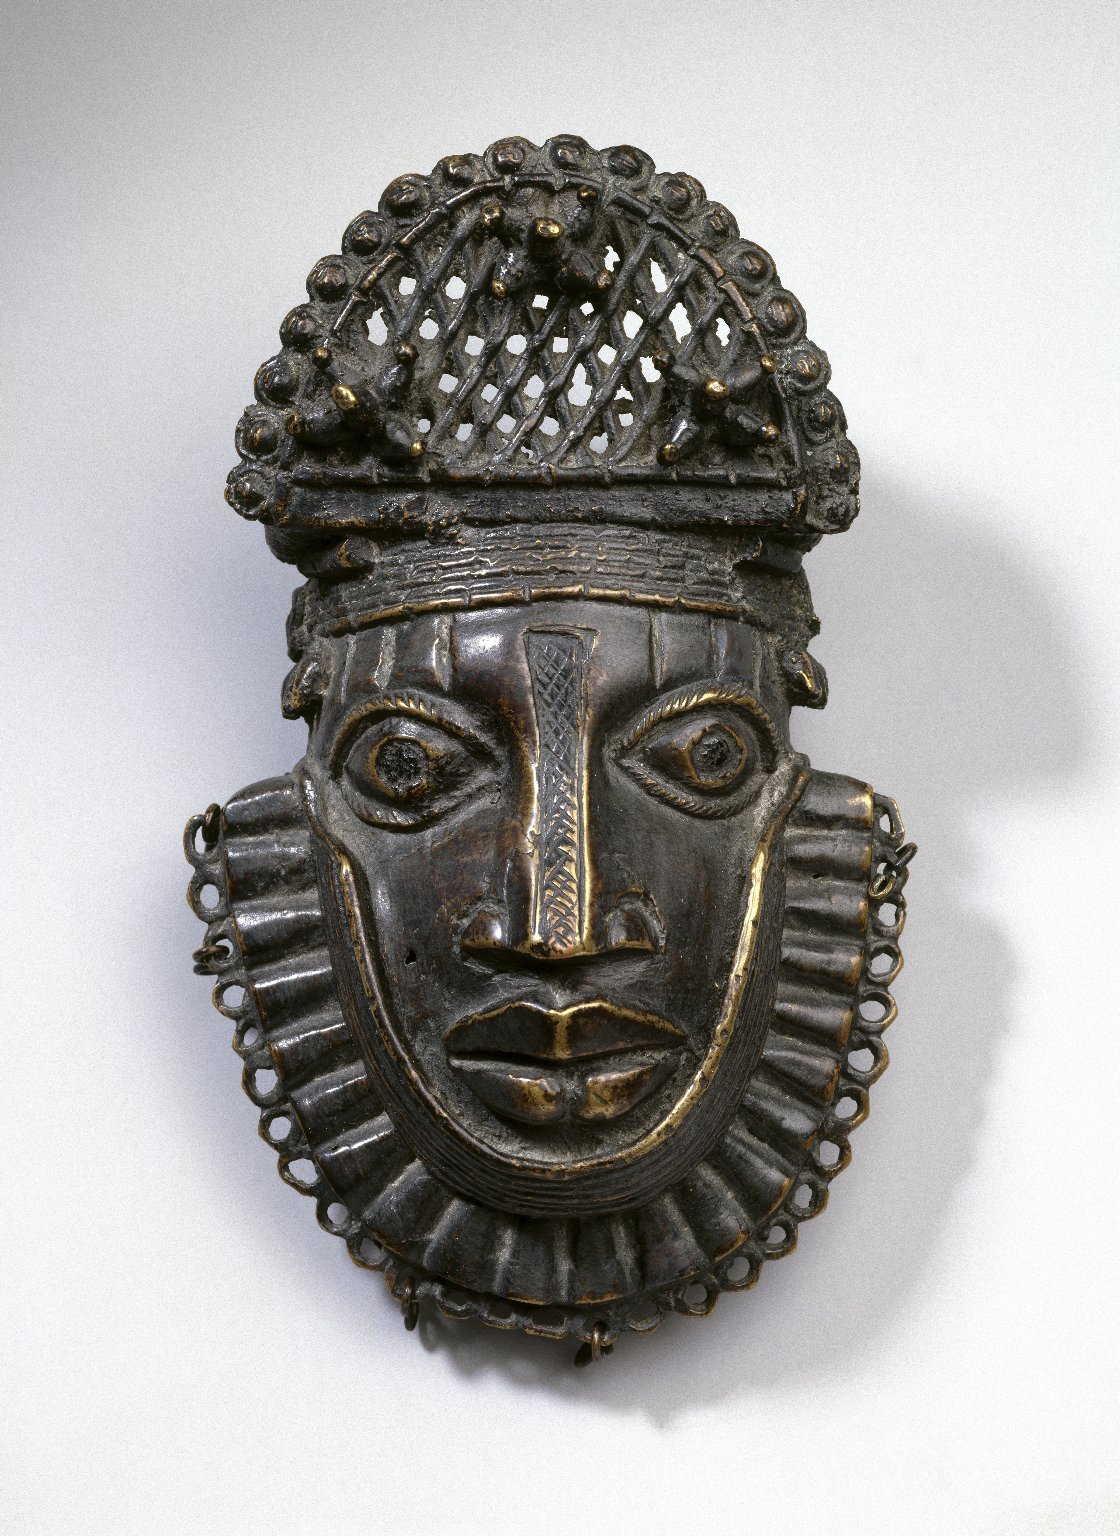 Brooklyn Museum: Hip Ornament with Human Face (Uhunmwun-ekue)